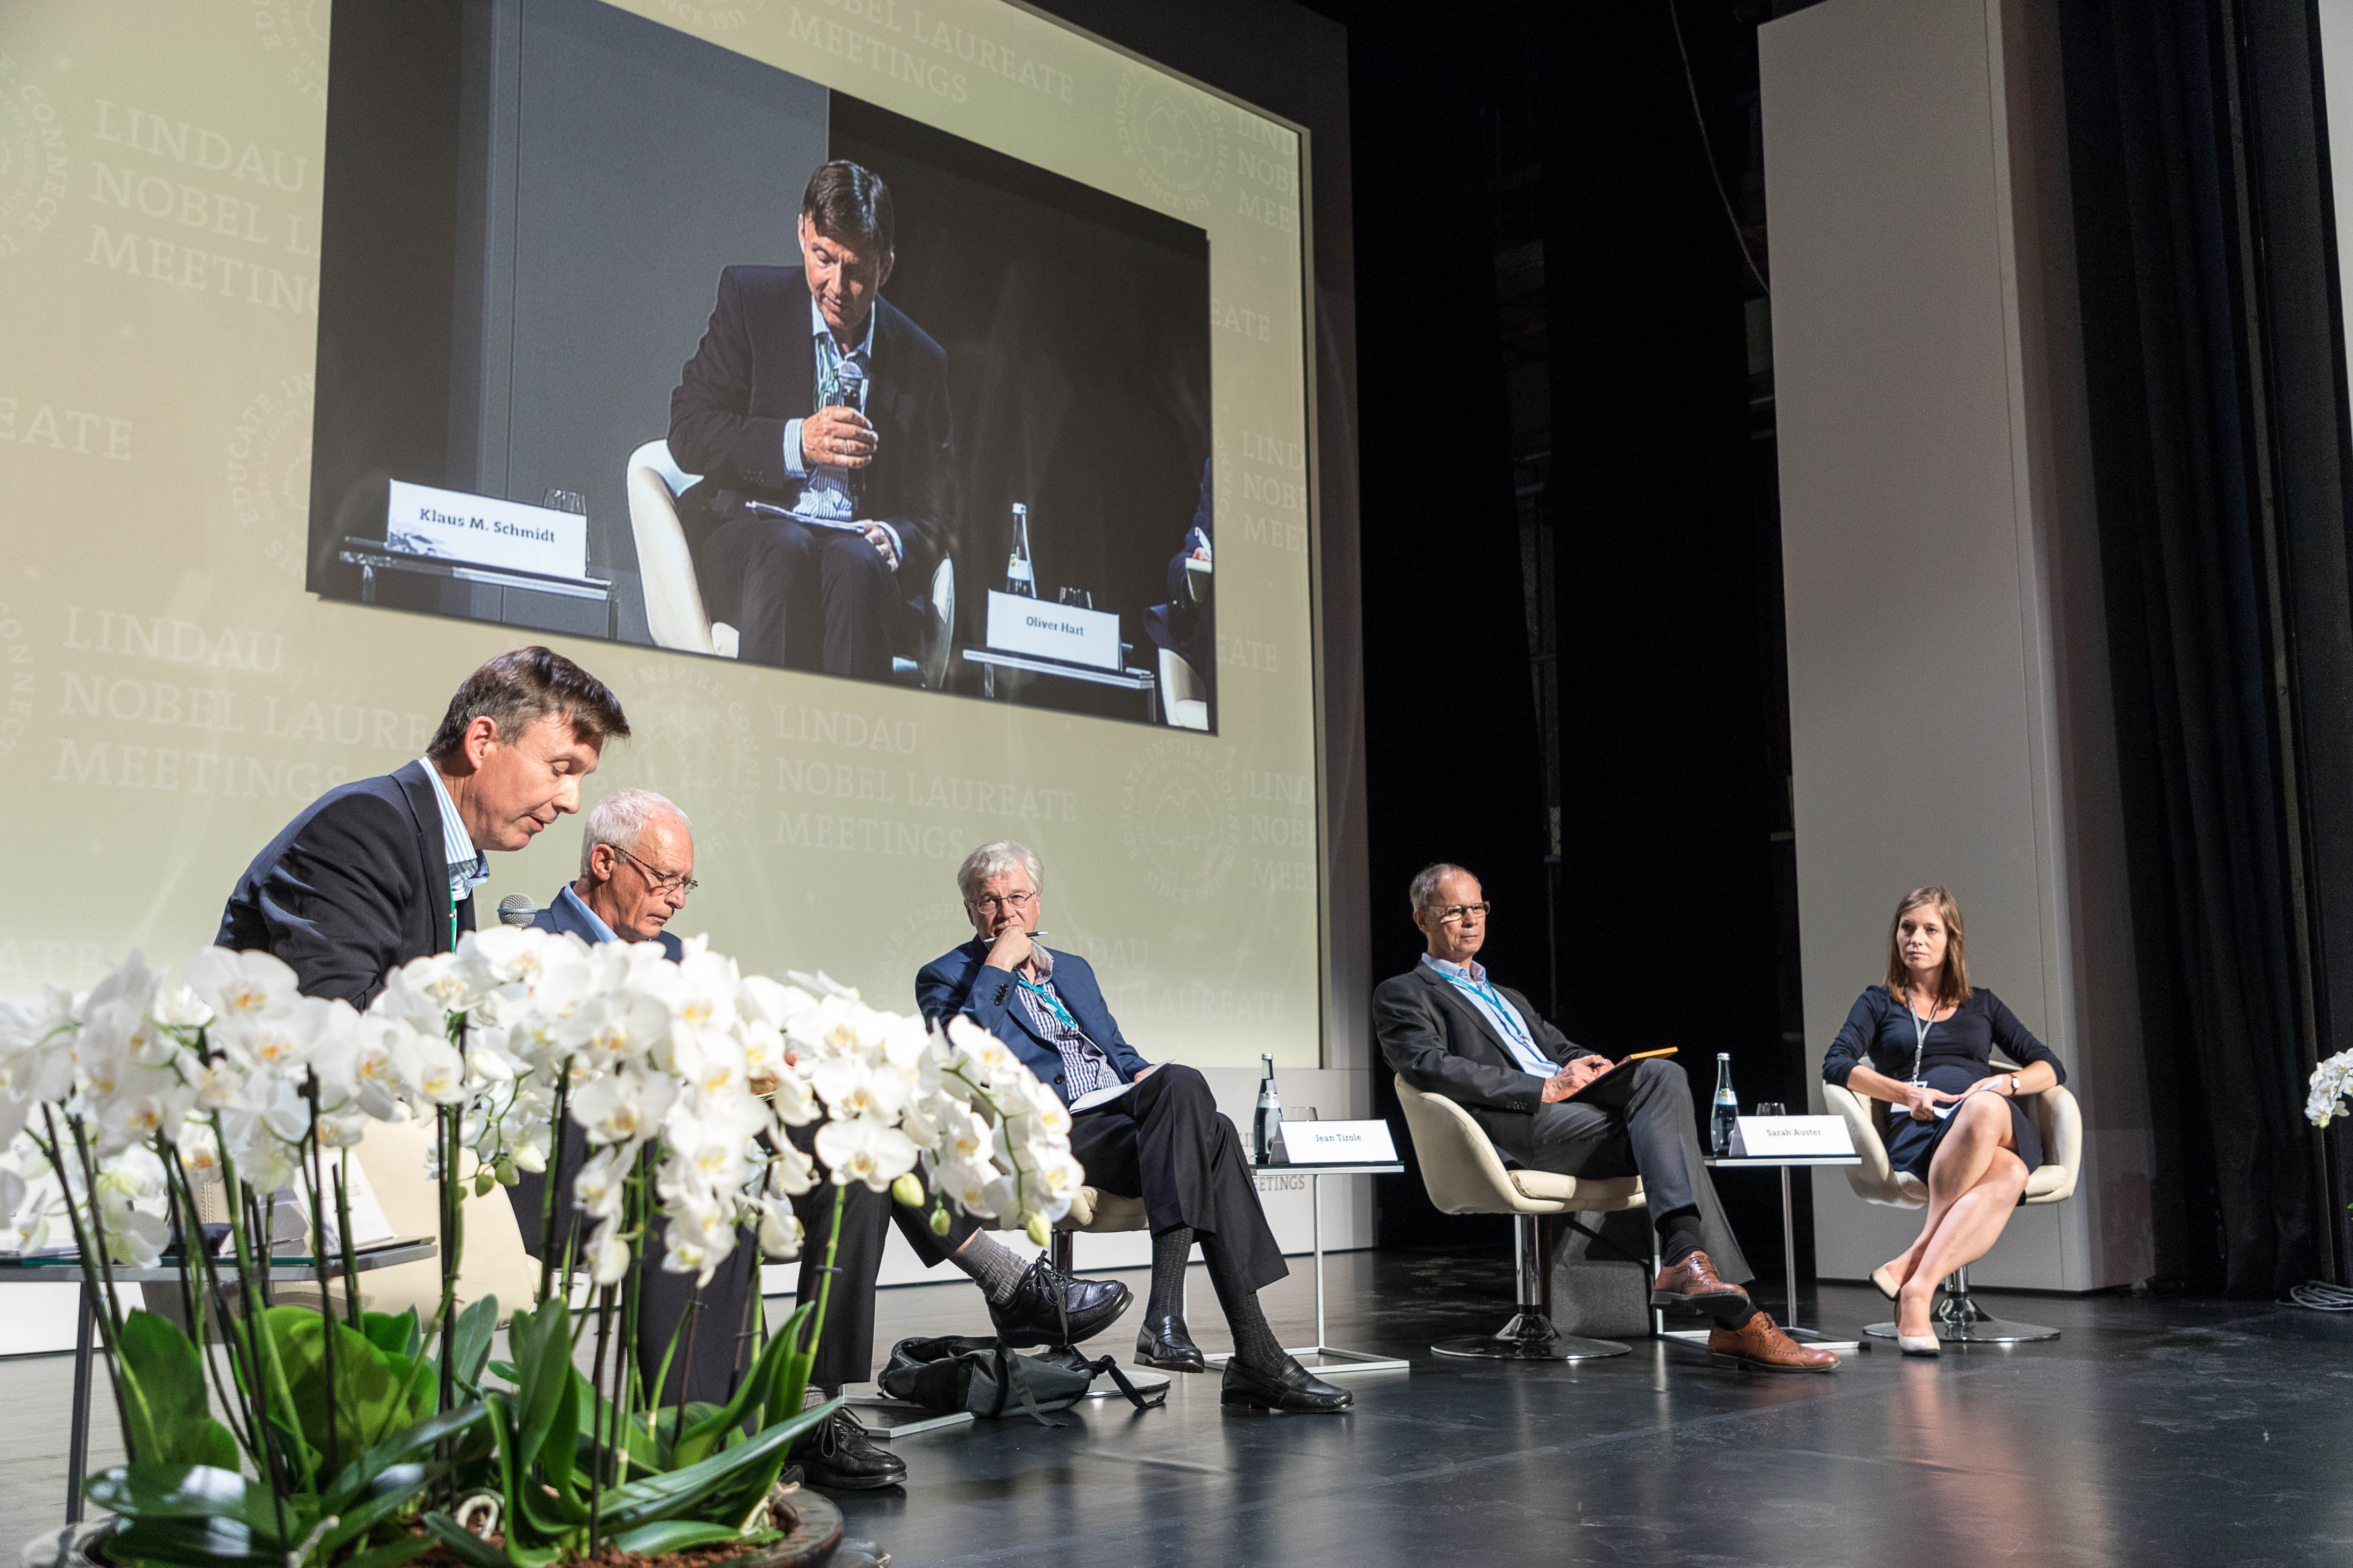 Panel Discussion: Contracts, Incentives and Organisations duirng the 6th Lindau Meeting on Economic Sciences. Picture/Credit: Christian Flemming/Lindau Nobel Laureate Meetings